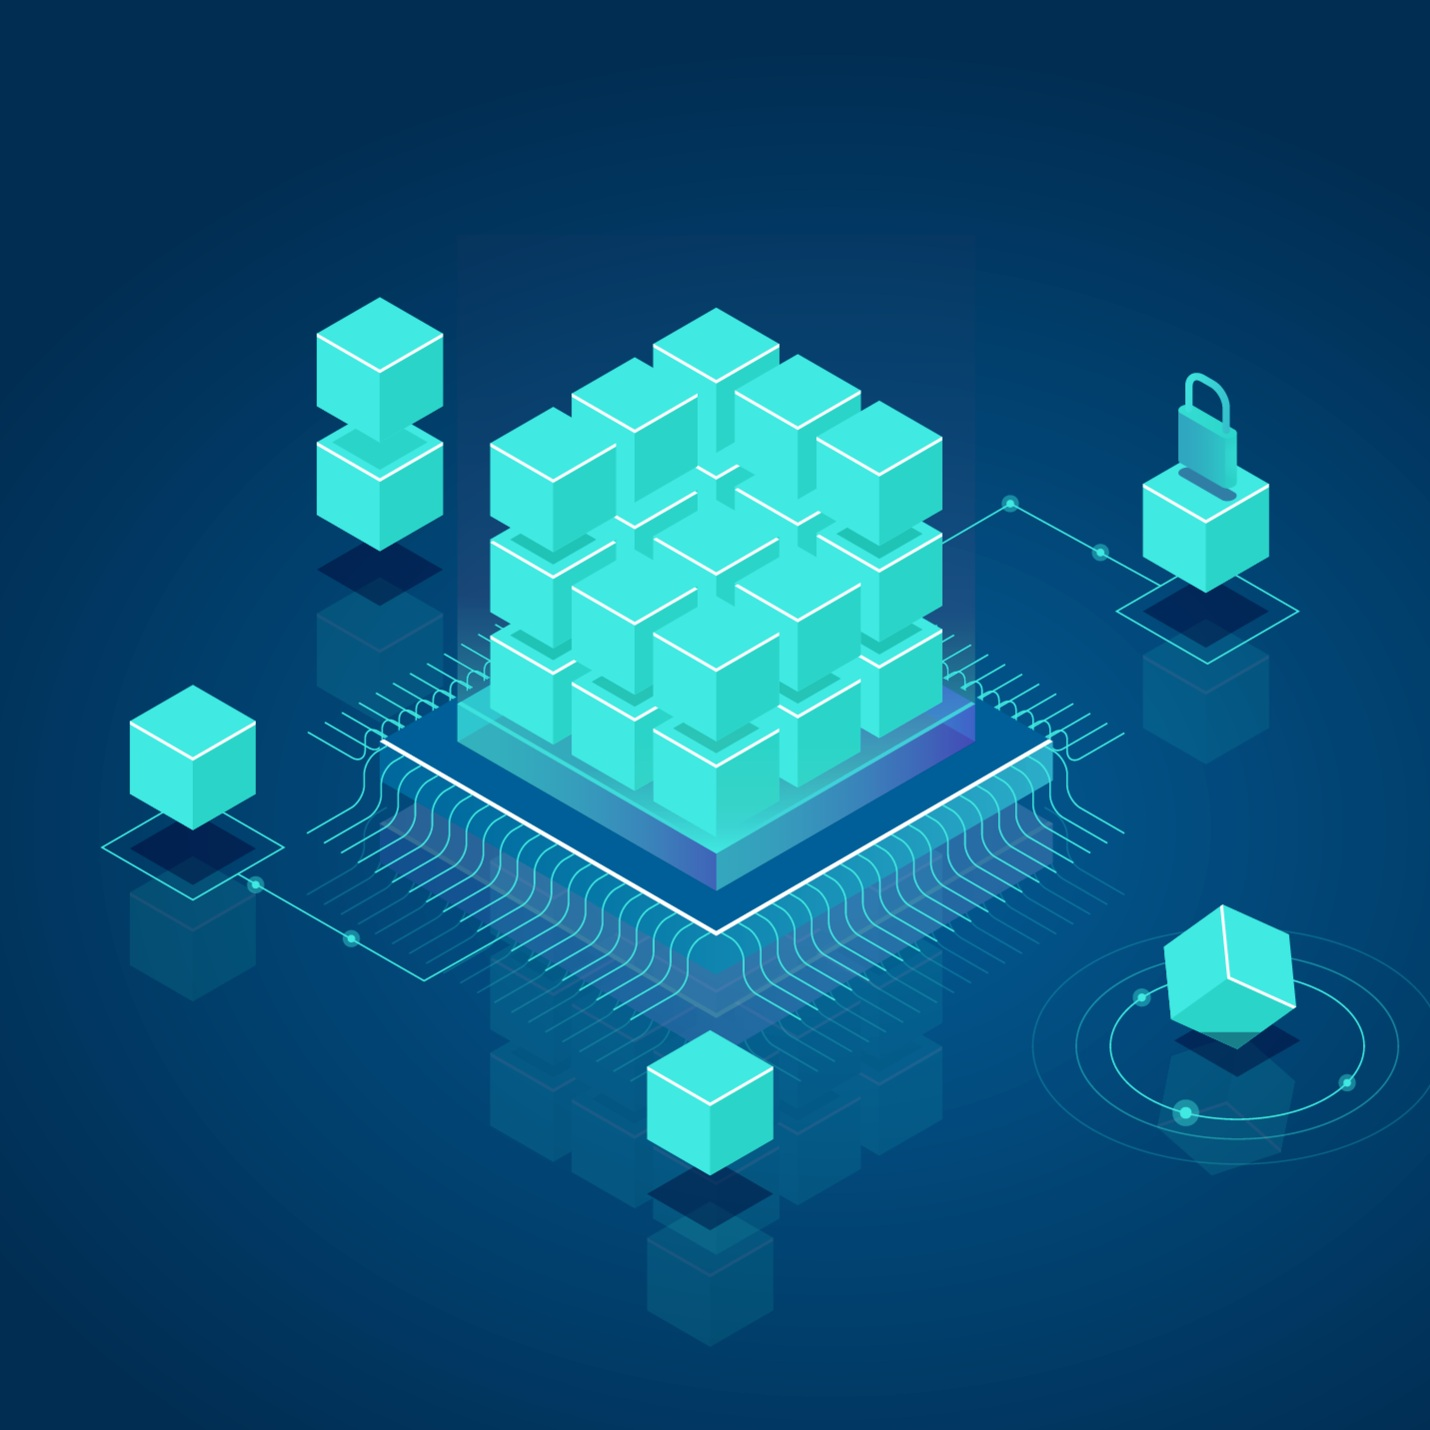 BLOCKCHAIN DDL - Compliance at its core.The core of 7QUBES is built with the latest compliance and security needs. Blockchain infrastructure gives an add on compliance benefit for the enterprise. It keeps an honest record and provides an audit trail from start to finish where no one can alter.